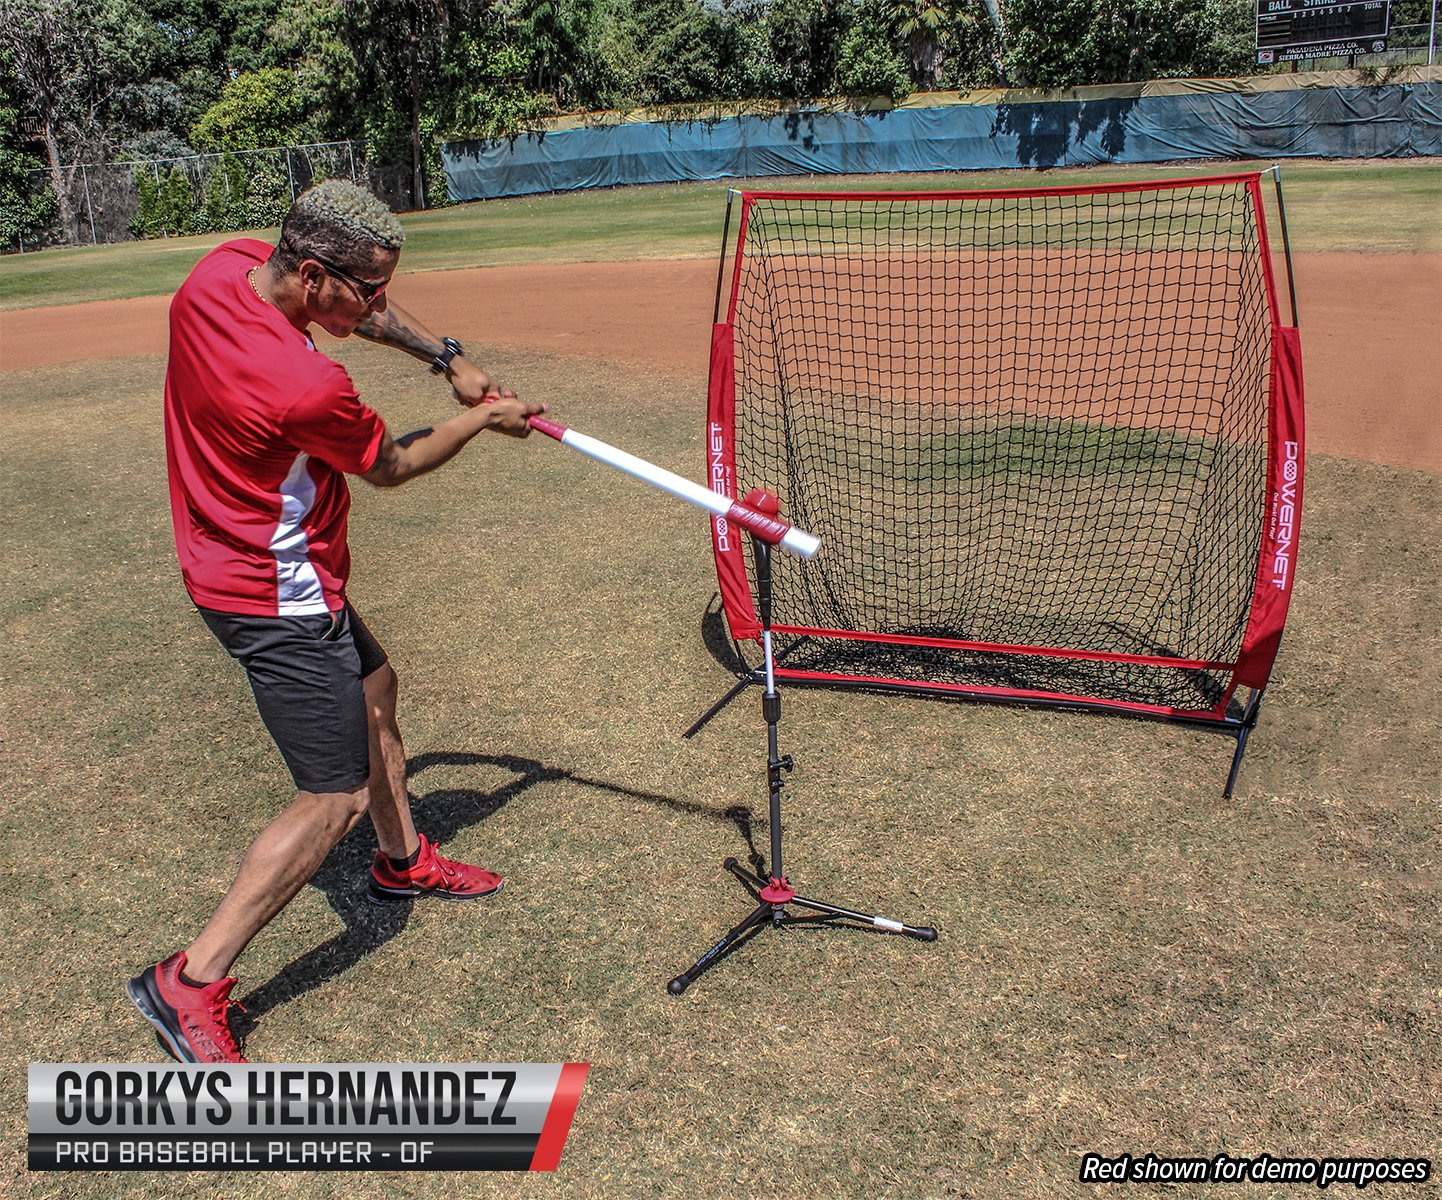 d8e256eeb PowerNet 5x5 Practice Net + Deluxe Tee + Strike Zone + Weighted ...